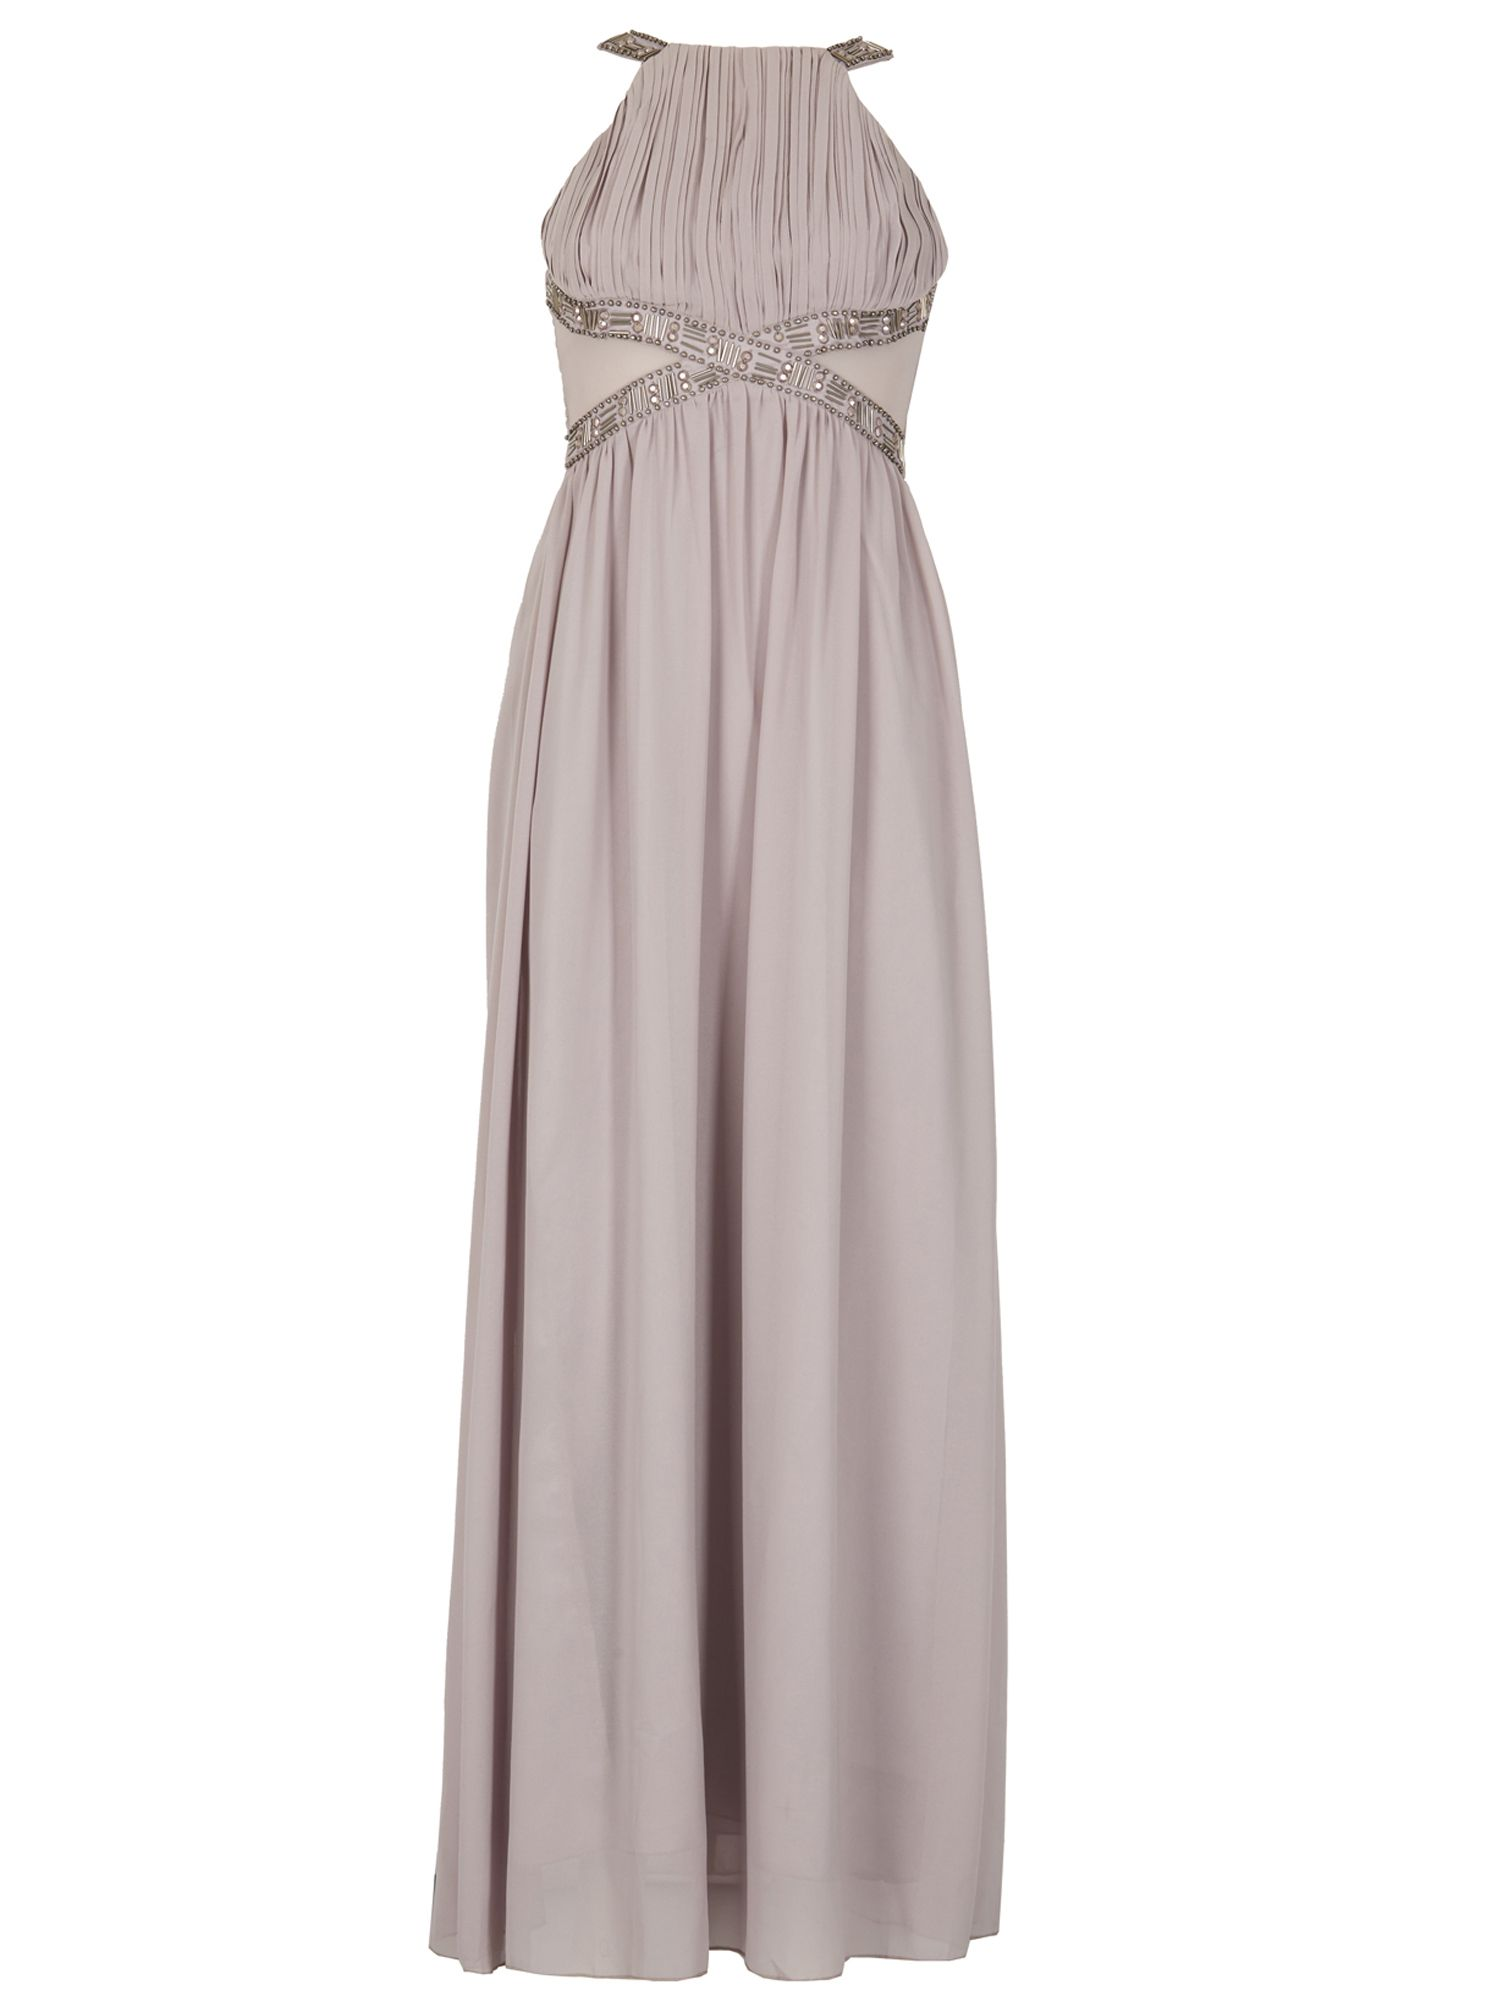 Izabel London Grecian Style Longer Length Dress, Grey